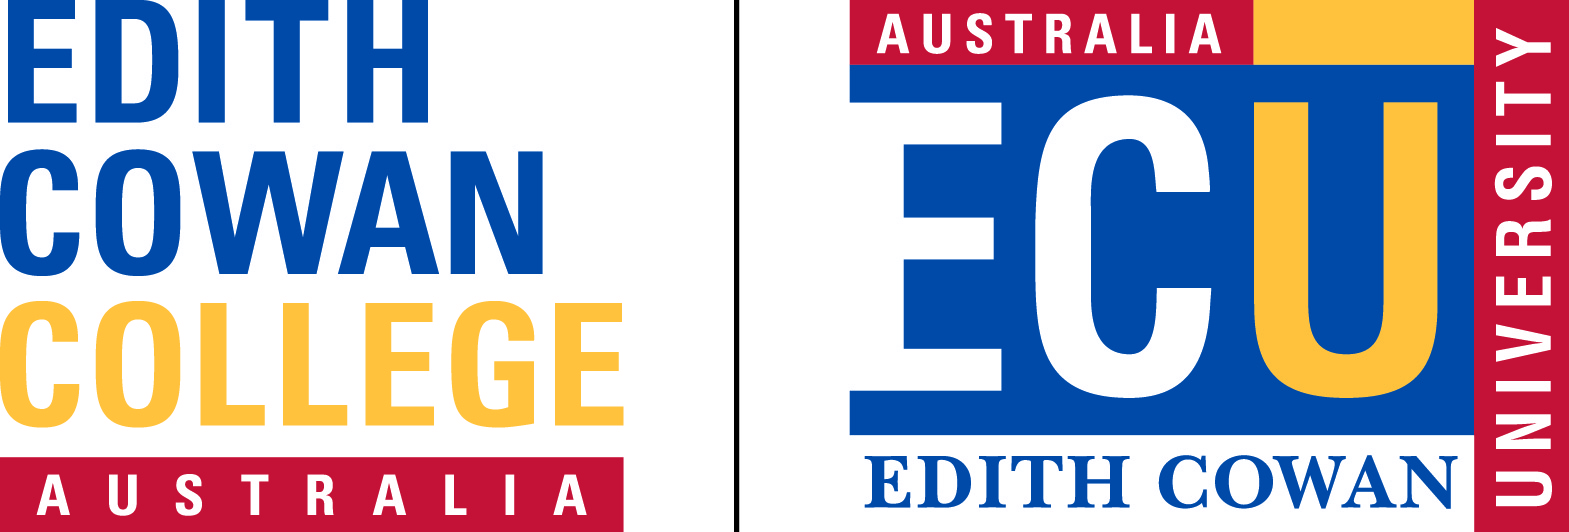 Edith Cowan College - Edith Cowan University